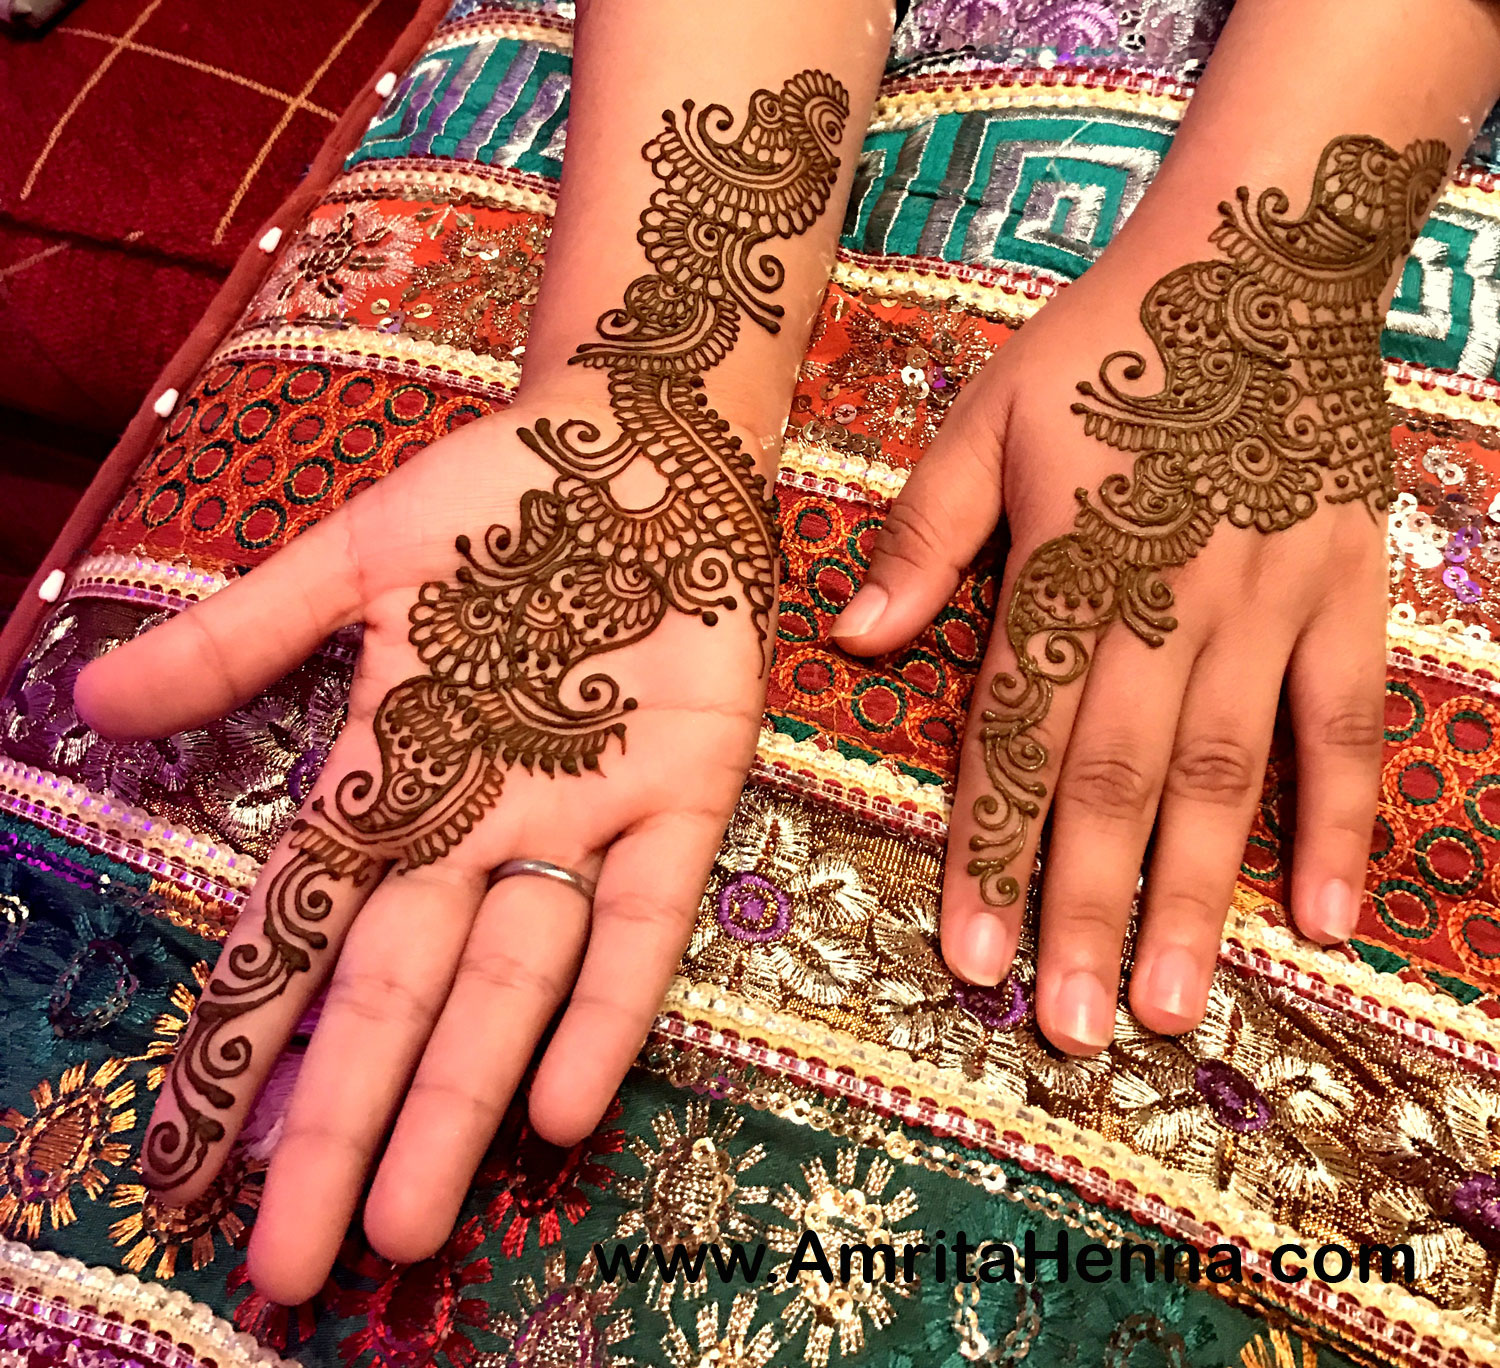 Top 10 Henna Designs for your Baby Shower - 10 Best Most Popular Mehndi Designs for your Baby Shower - Top 10 Mehendi Henna Designs to choose from when your Friends throw you a Baby Shower - Indian Wedding Baby Shower Ceremony Henna Designs - Top 10 Henna Mehendi Designs for Baby Shower Party - Top 10 Baby Shower Henna Designs - Top 10 Henna Mehendi Designs for a Mom-To-Be - 10 Most Famous Baby Shower Mehendi Designs for the Mom-To-Be